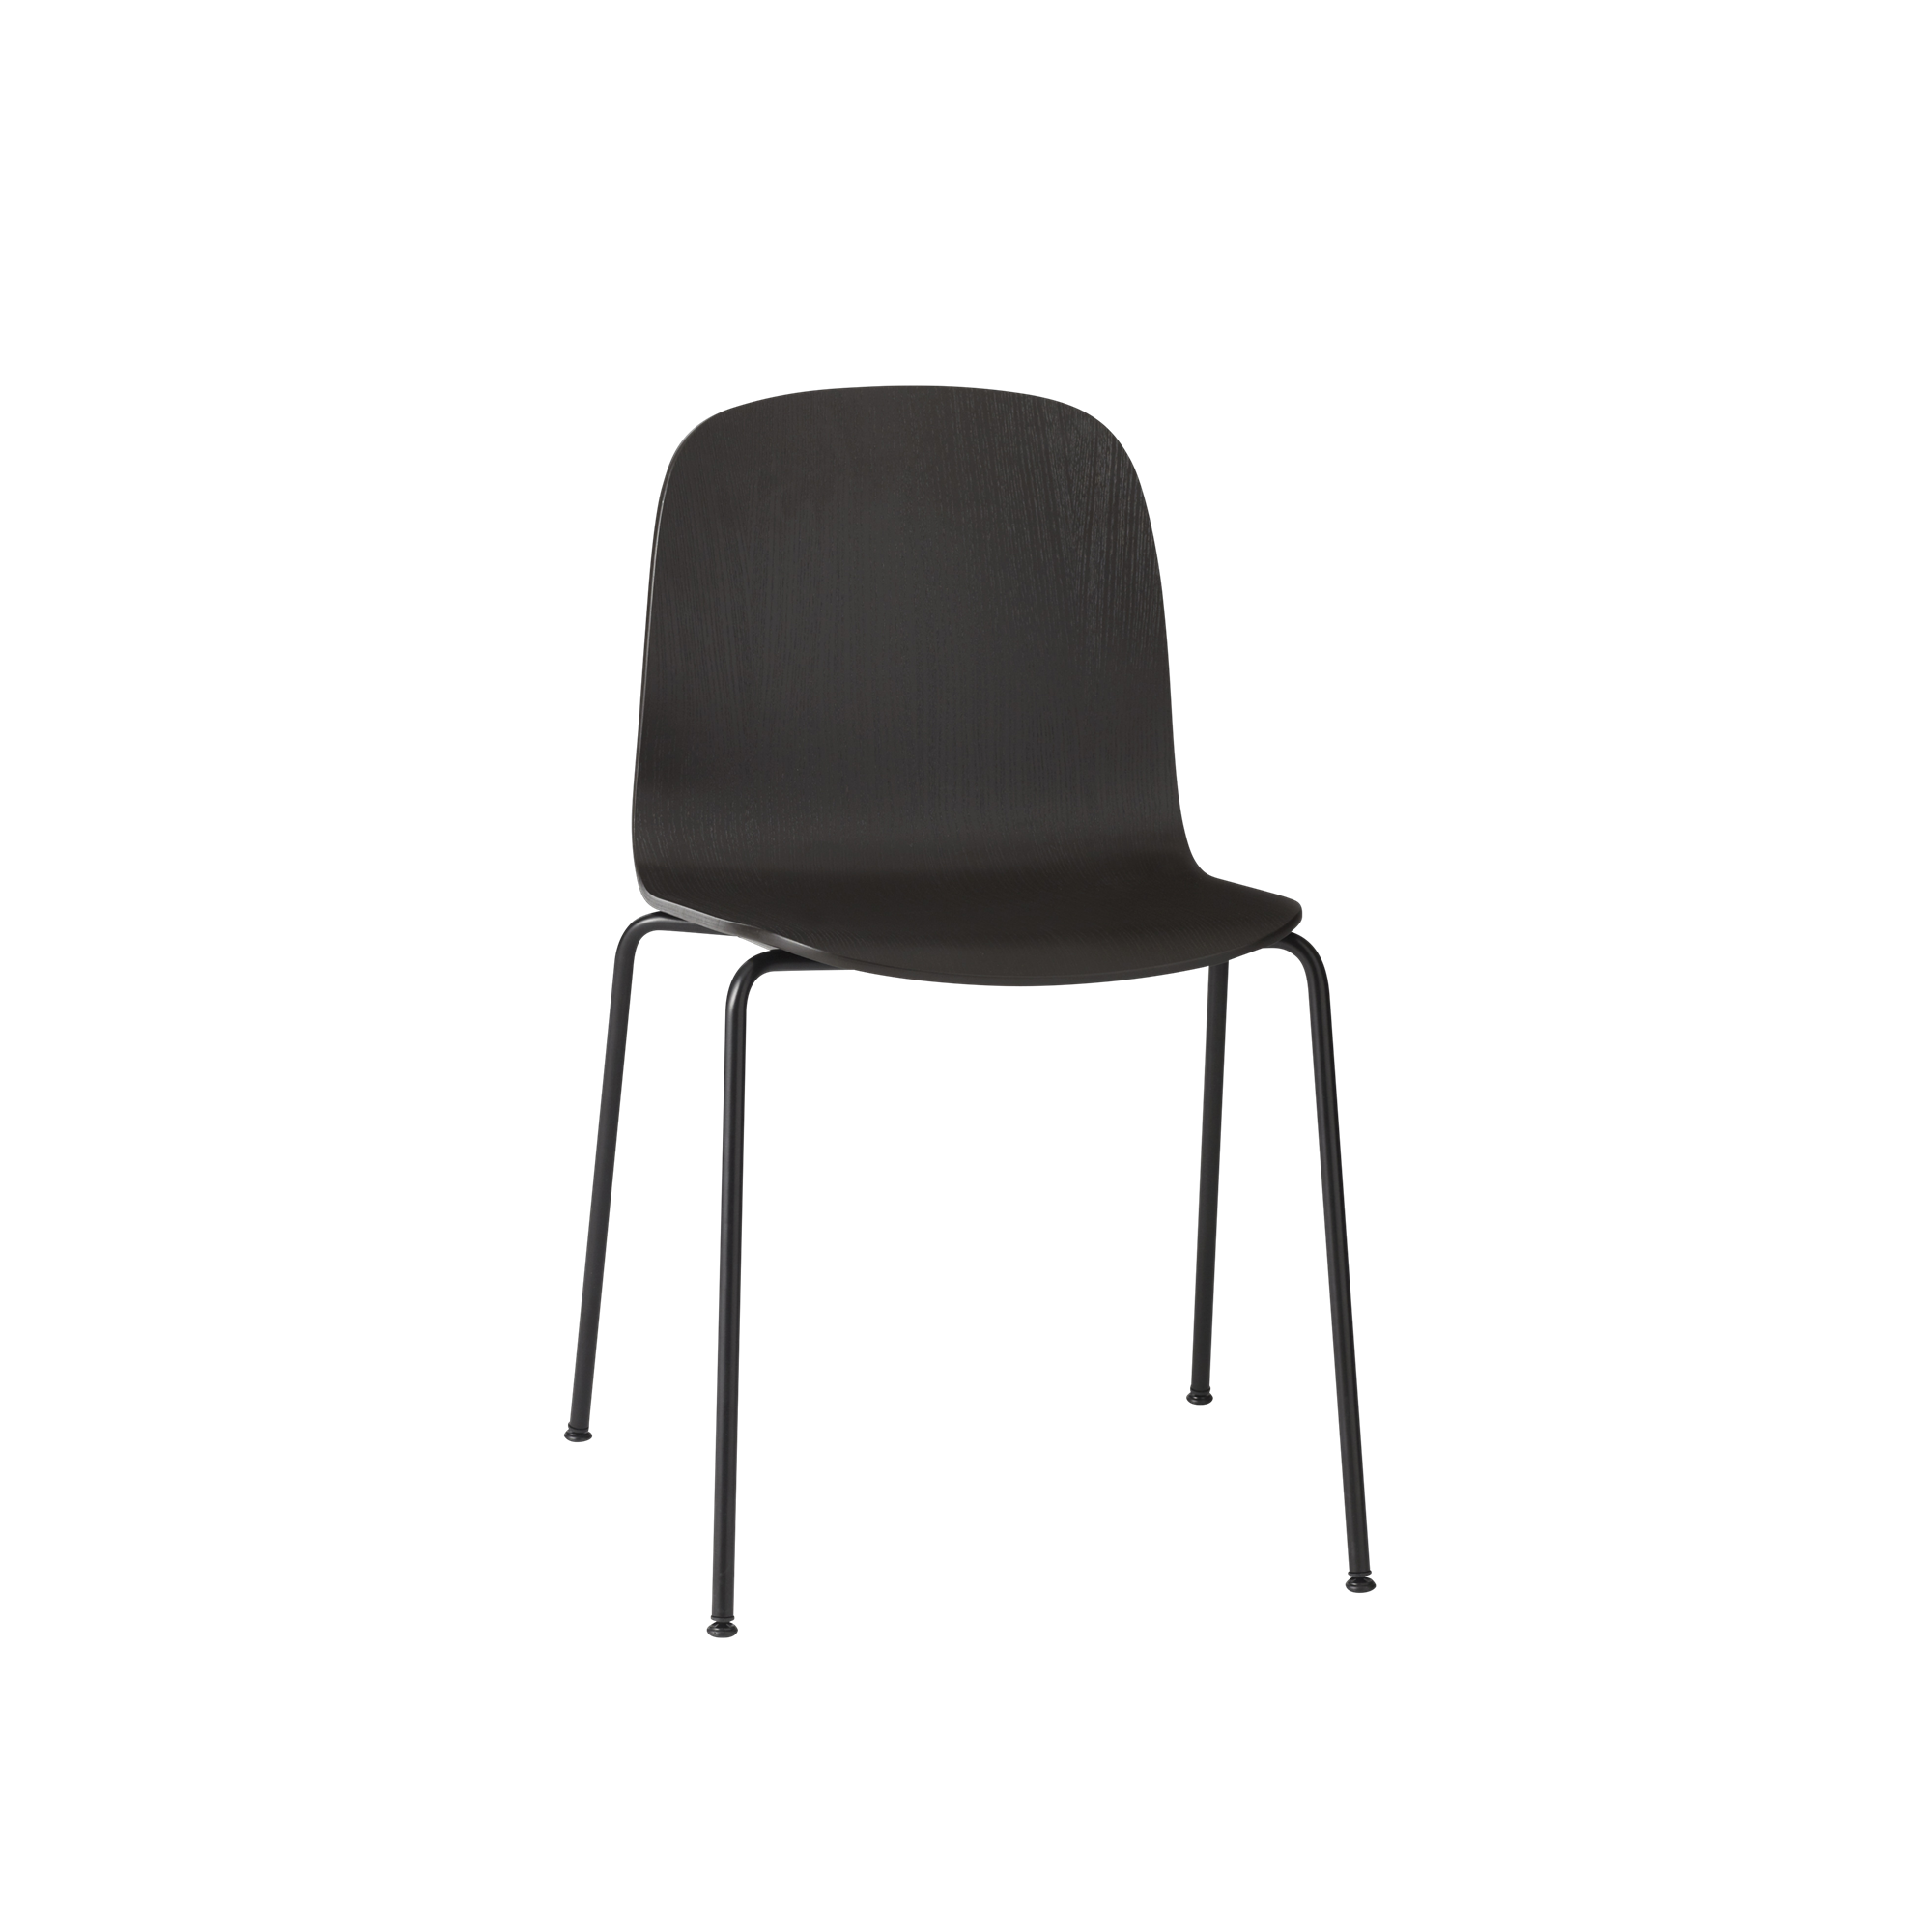 Visu Chair Tube Base Ideal For Conferences And Office Spaces Modern Scandinavian Design Chair Scandinavian Design